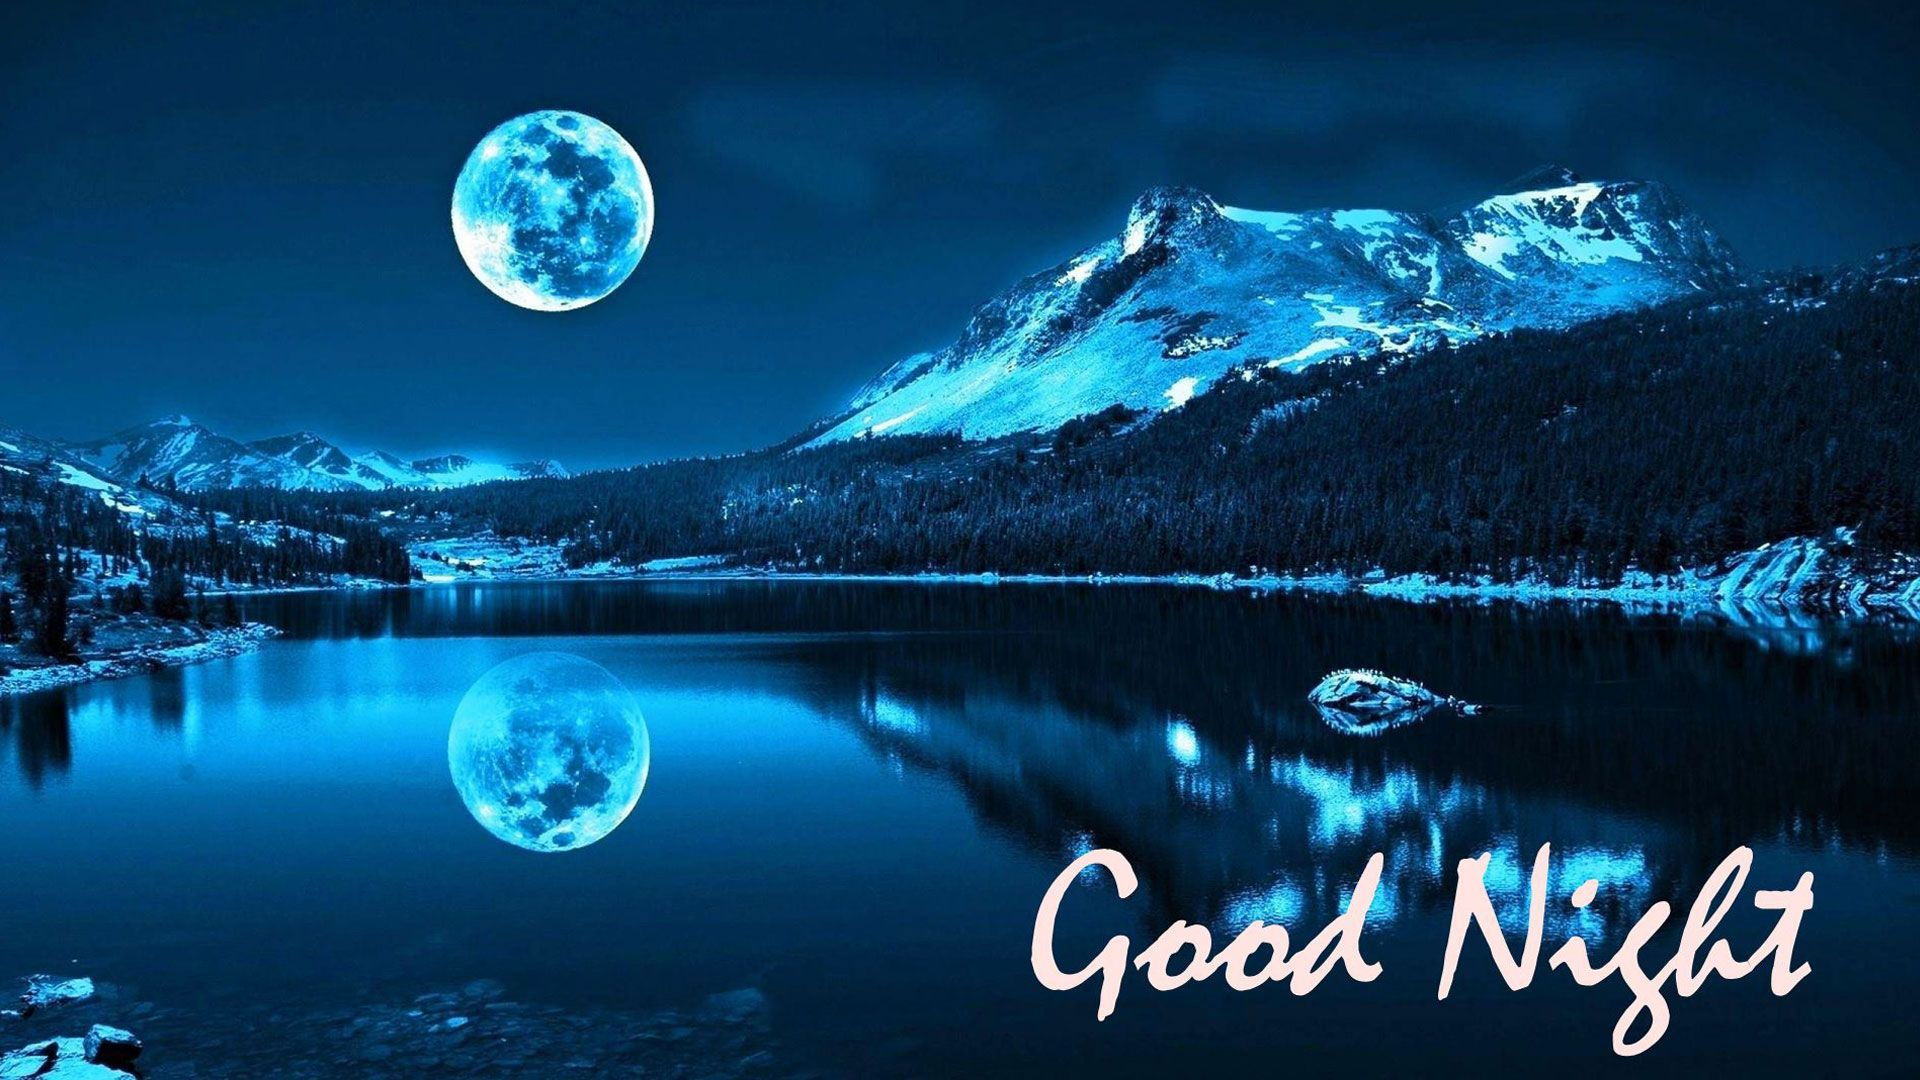 hd pics photos awesome good night attractive night scenery moon